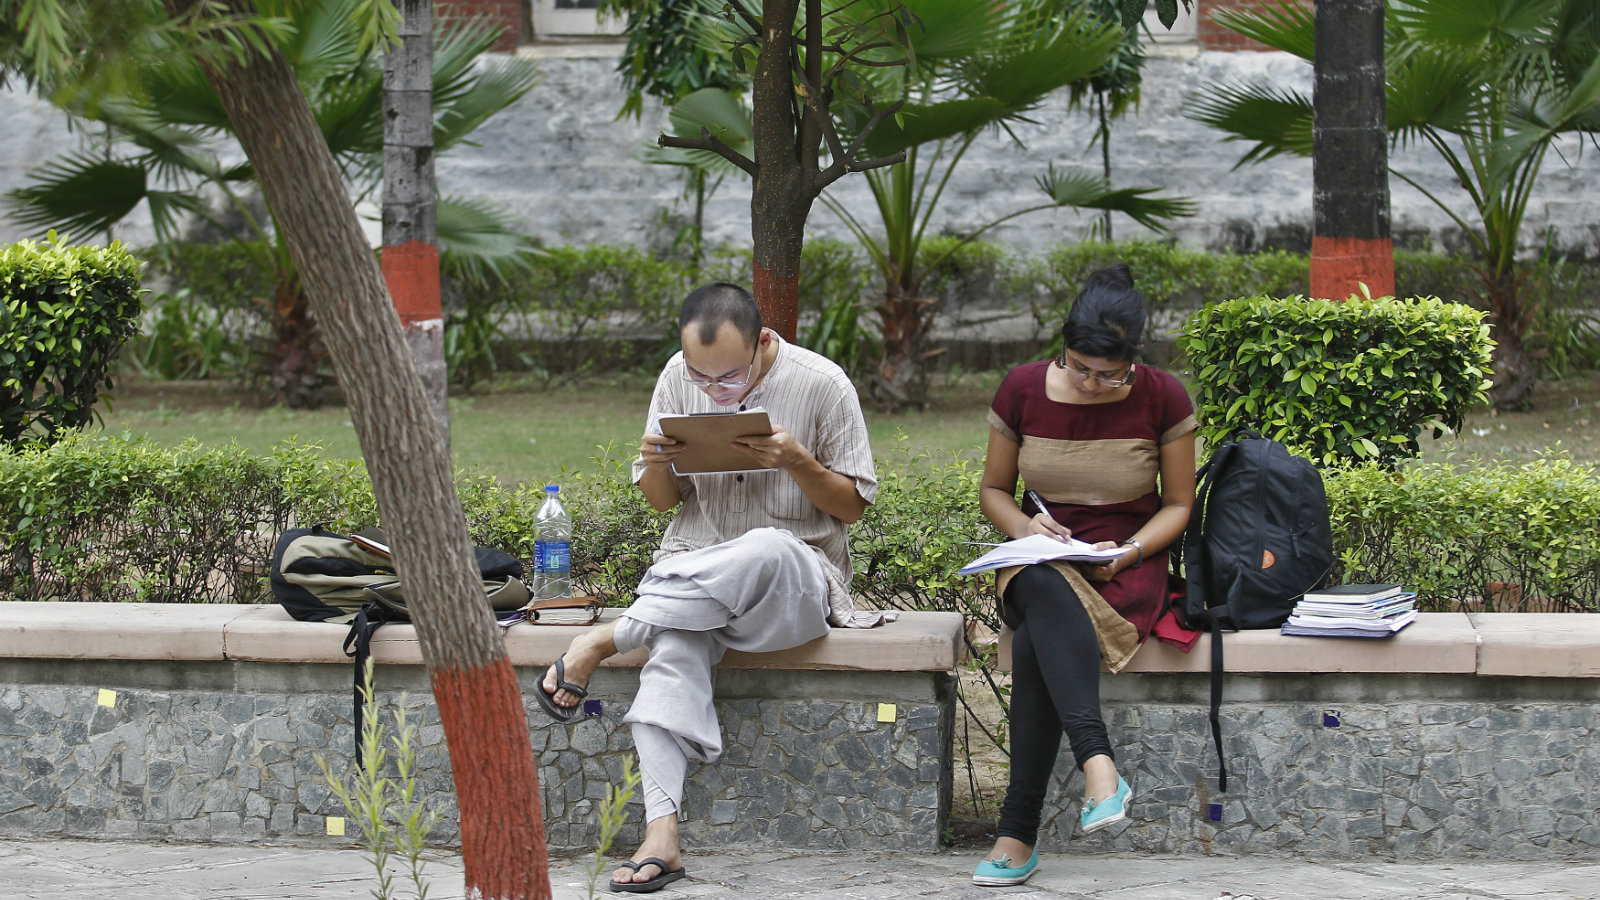 Indian students study inside the Delhi University campus in New Delhi September 20, 2013. Picture taken September 20, 2013. To match INDIA-EDUCATION/